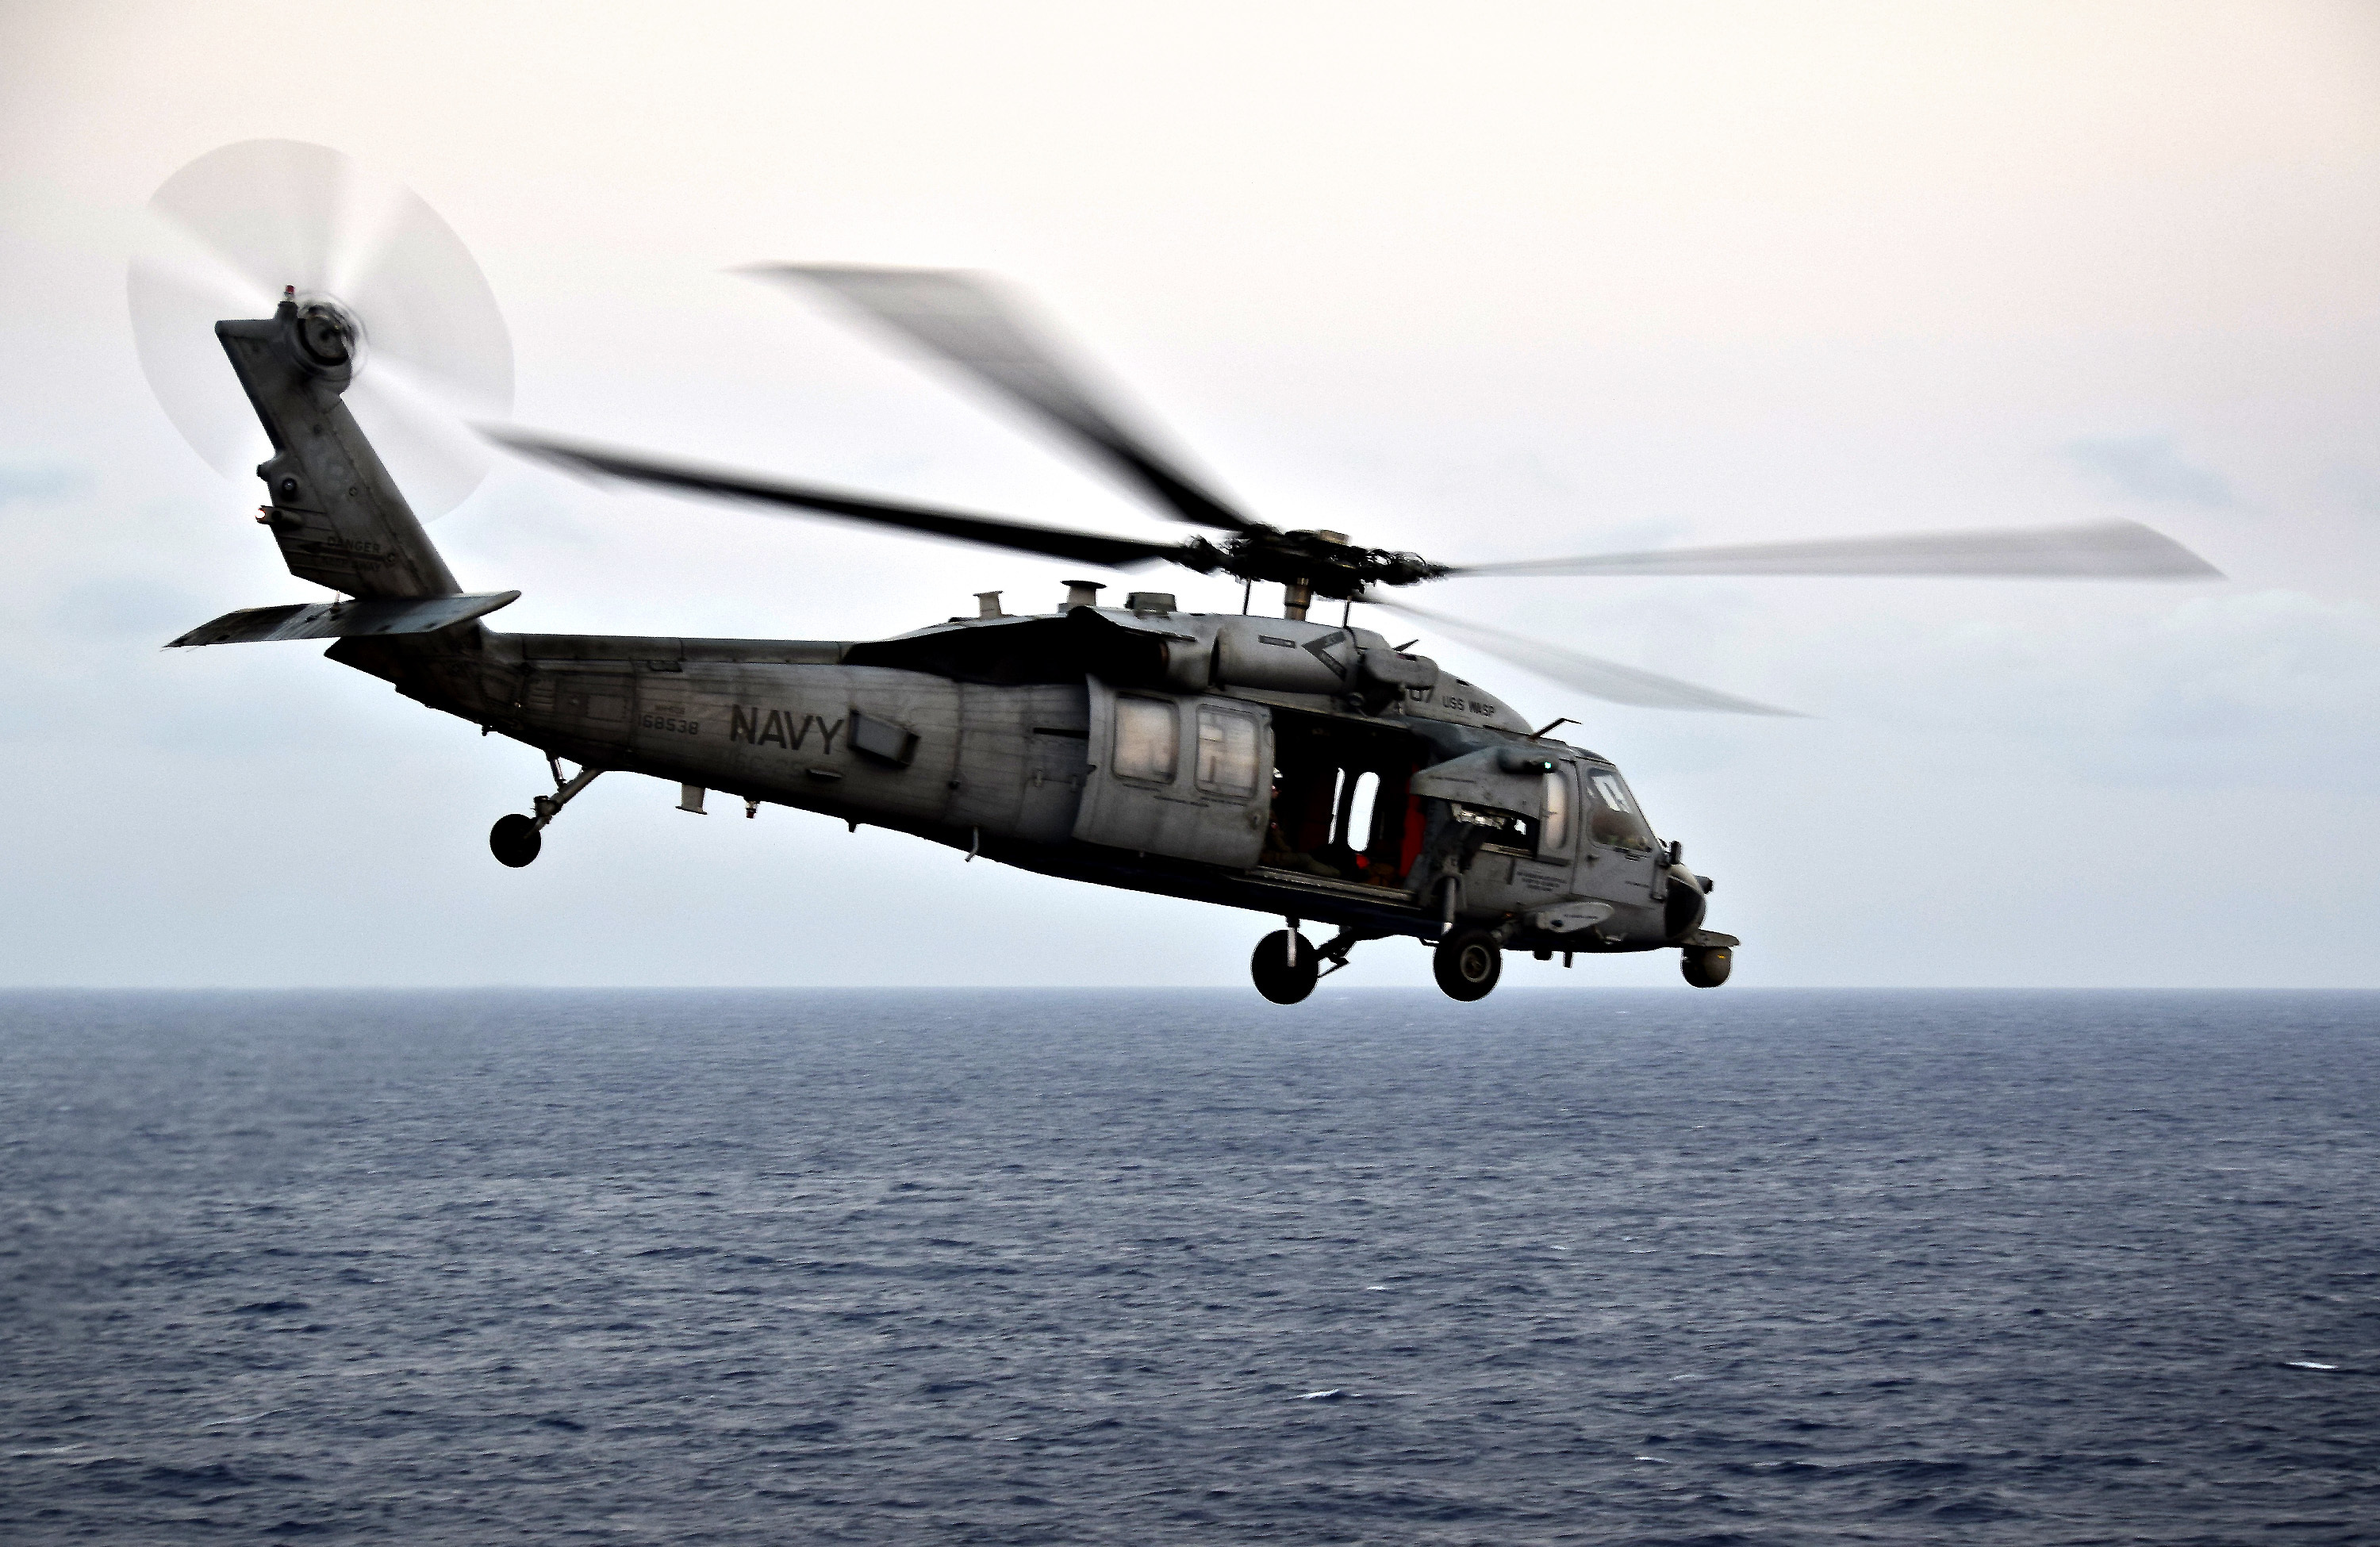 An MH-60S Sea Hawk helicopter, assigned to Helicopter Sea Combat Squadron 25. (US Navy photo by MC1 Daniel Barker)